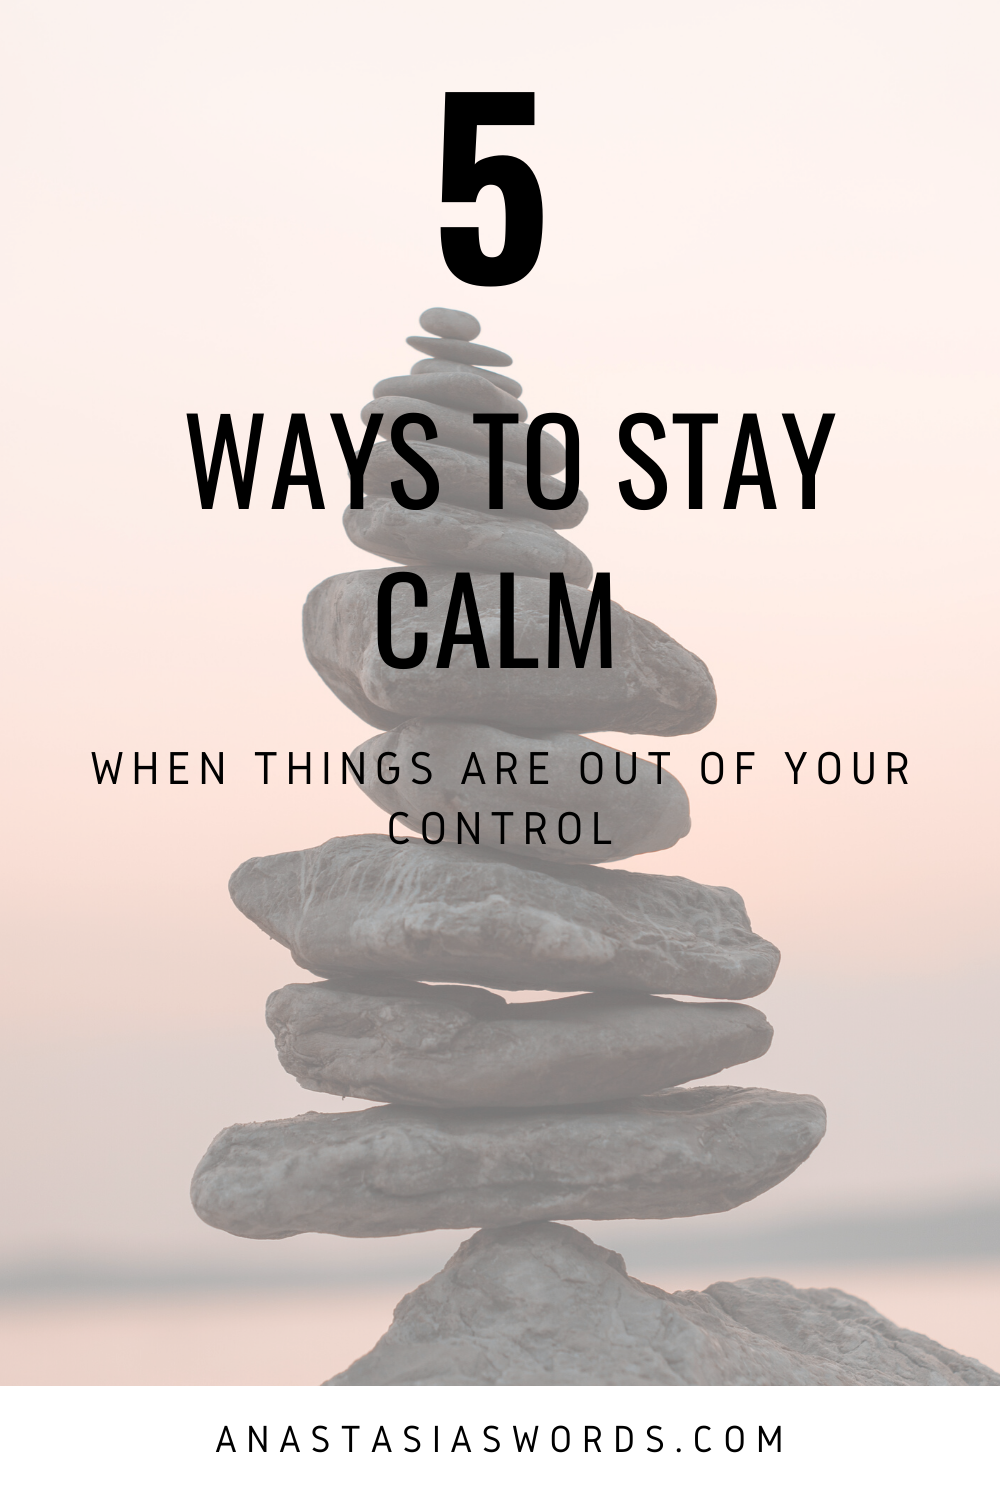 It is up to us how we handle a stressful situation. This blog has 5 tips to help you stay calm when there is a lot of chaos going on around you.  #staycalm #tips #nopanic #chaos